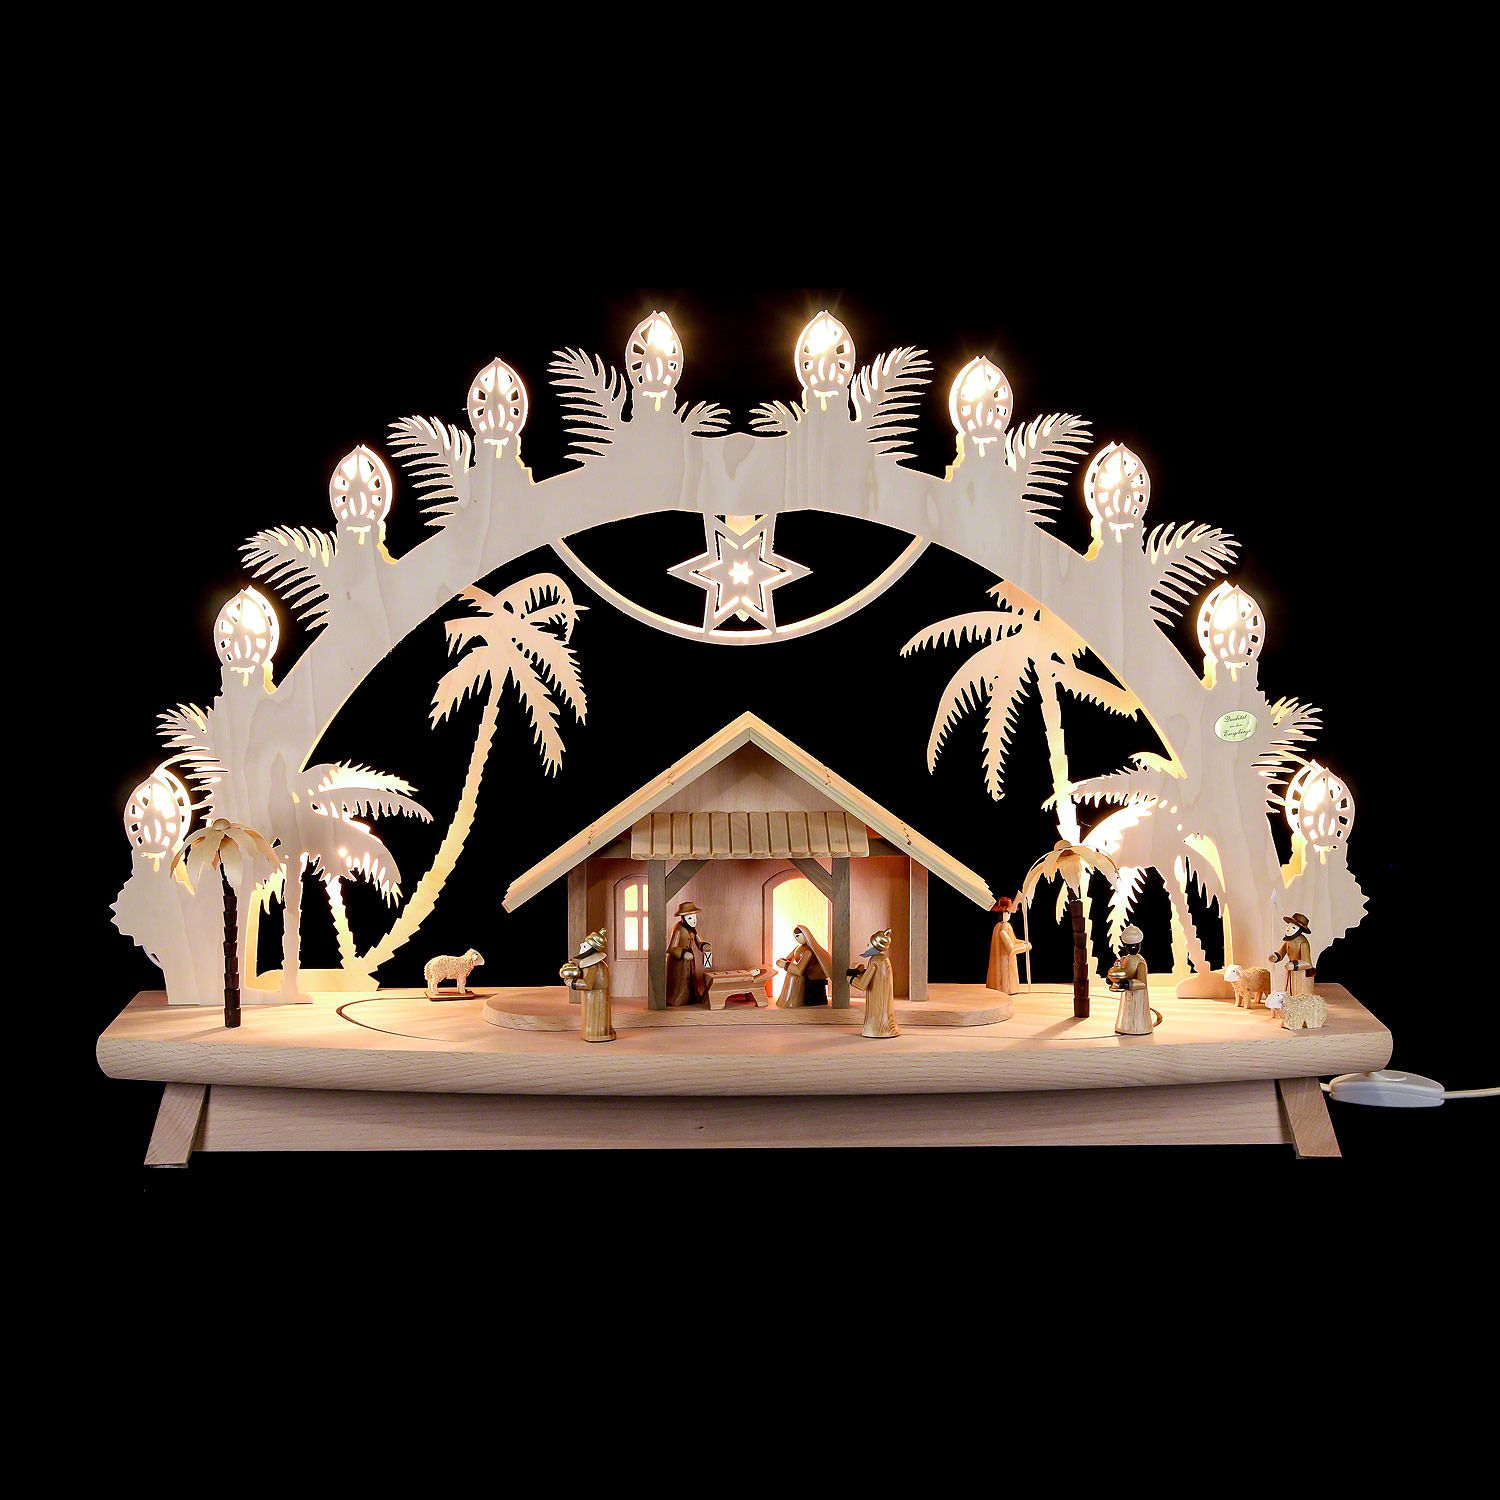 3d Candle Arch Nativity With Moving Figures 68 43 16 Cm 27 17 6in By Saico Seiffen Candles Christmas Holidays Wooden Candles